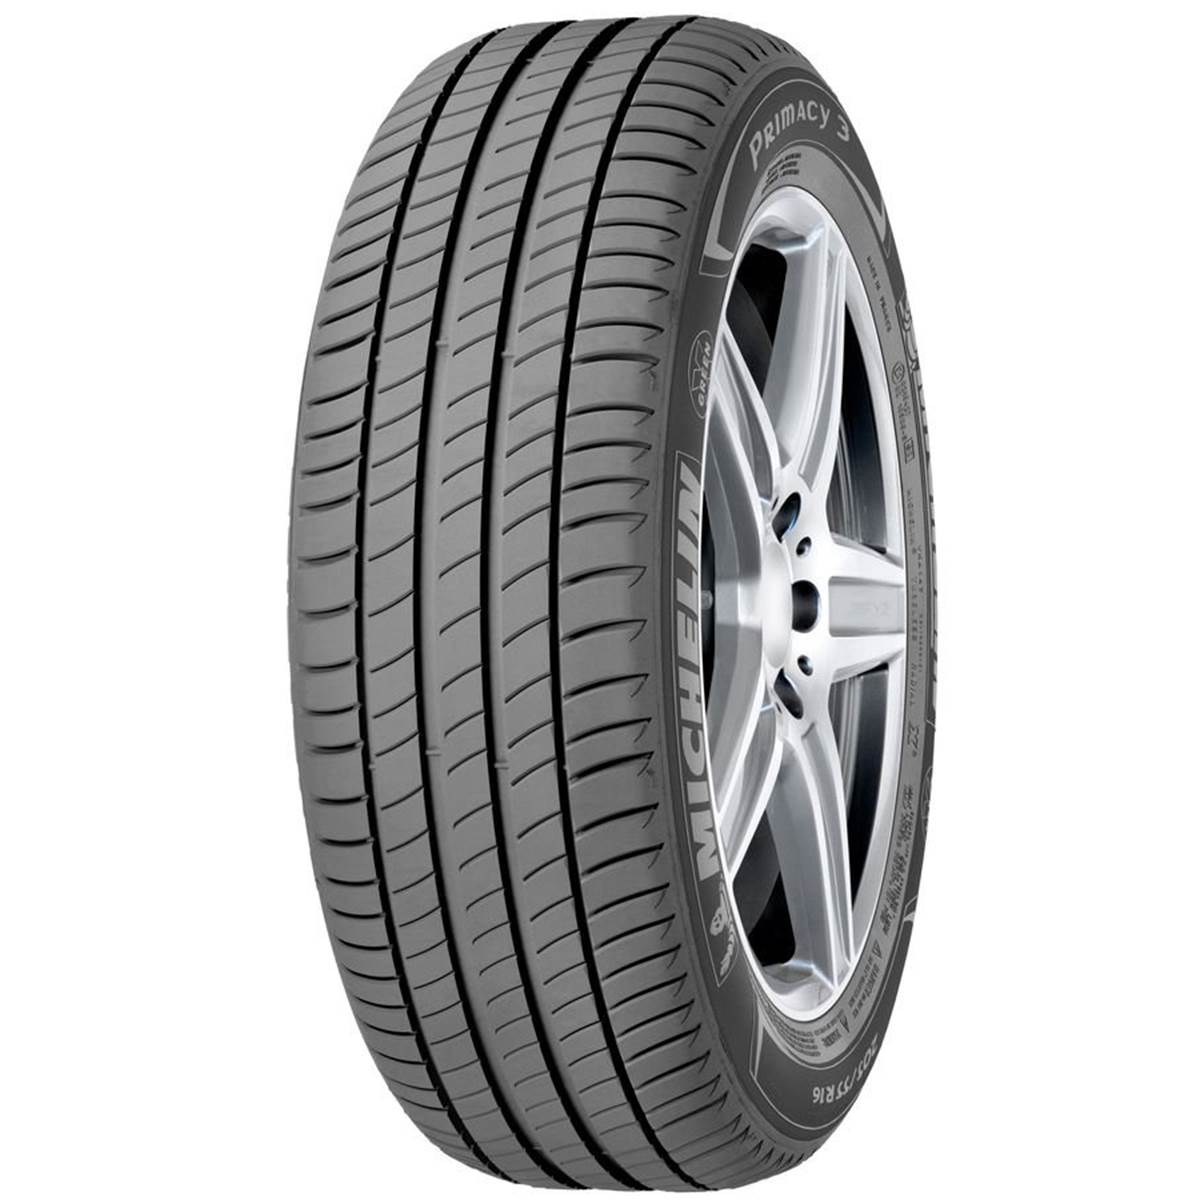 Pneu Michelin 225/60R17 99V Primacy 3